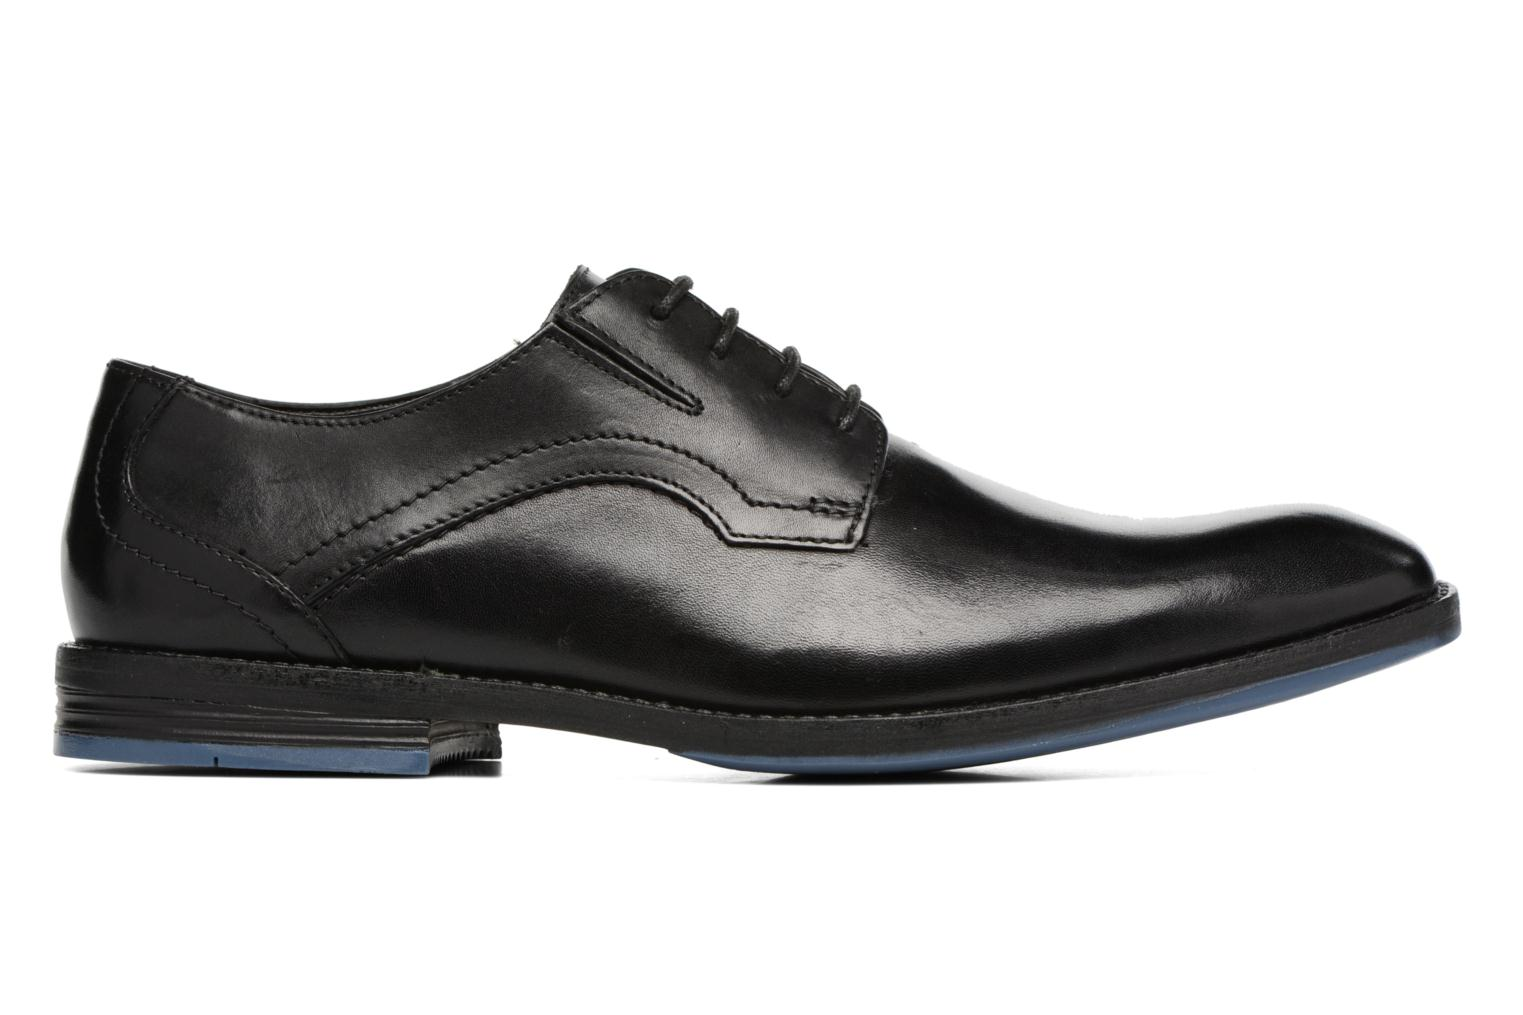 Prangley Walk Black leather